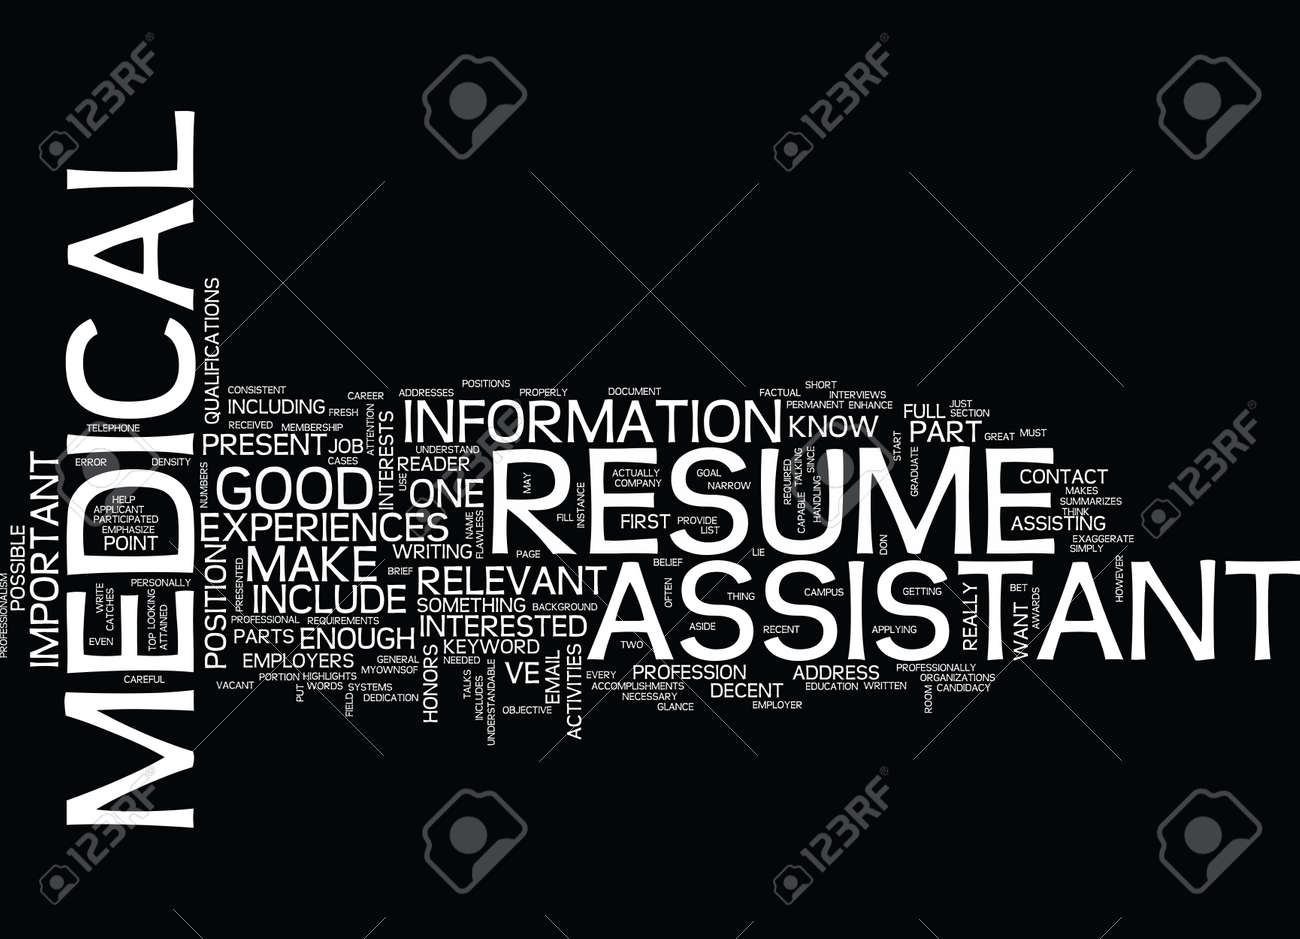 MEDICAL ASSISTANT RESUME Text Background Word Cloud